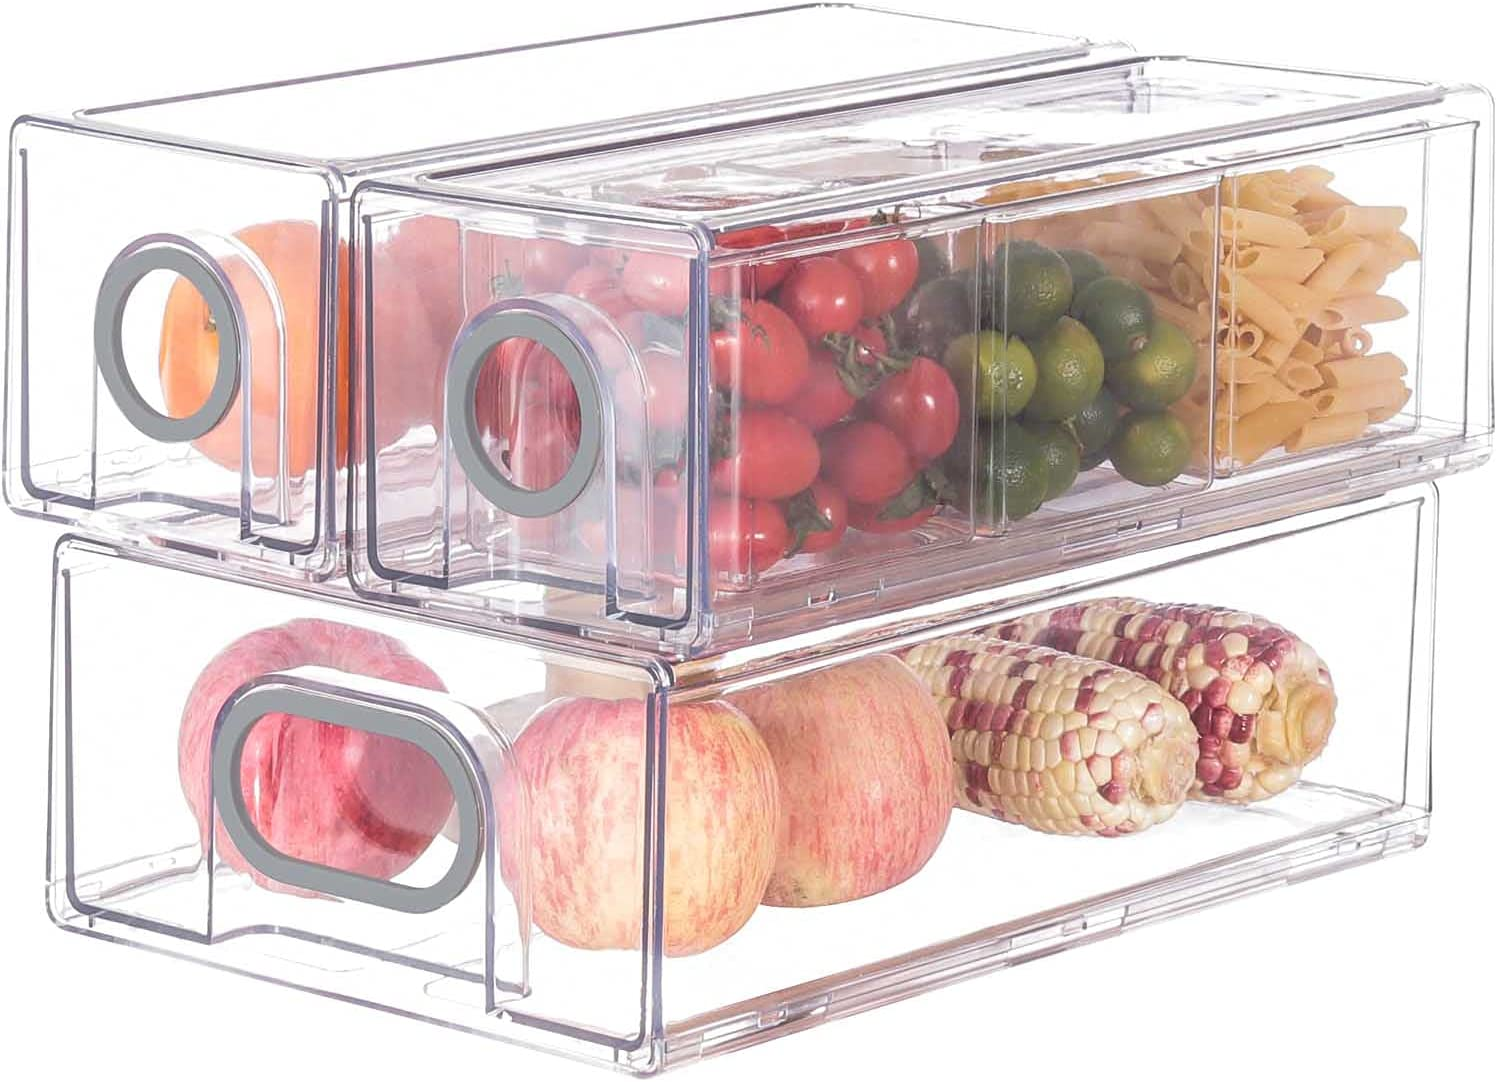 Refrigerator Organizer Bins, Set of 6 Pantry Organization Drawers Cabinet Organizers And Storage-for Freezers, Countertops and Cabinets-BPA Free Clear Plastic Pantry Storage Racks, Grey Handle 6